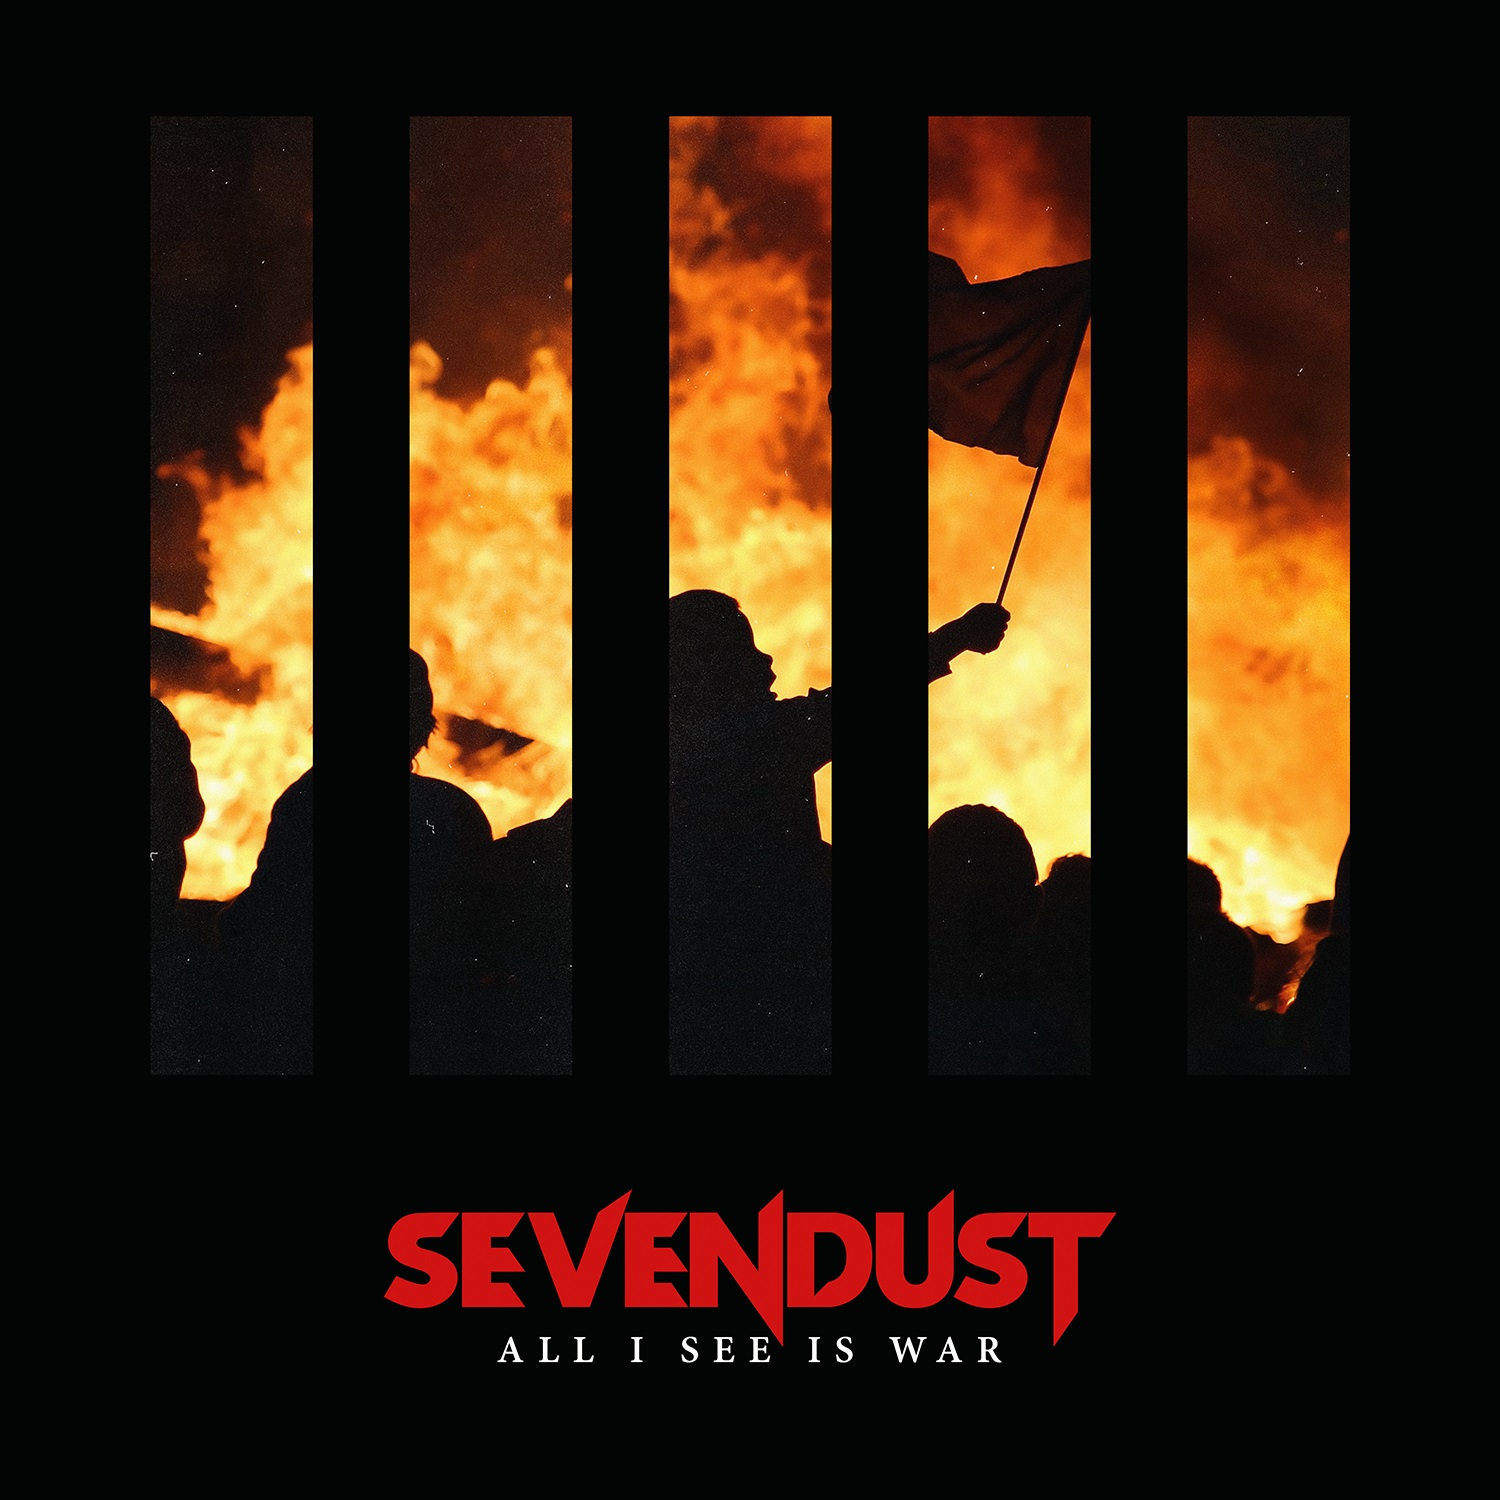 SEVENDUST return with new album on Rise Records this May